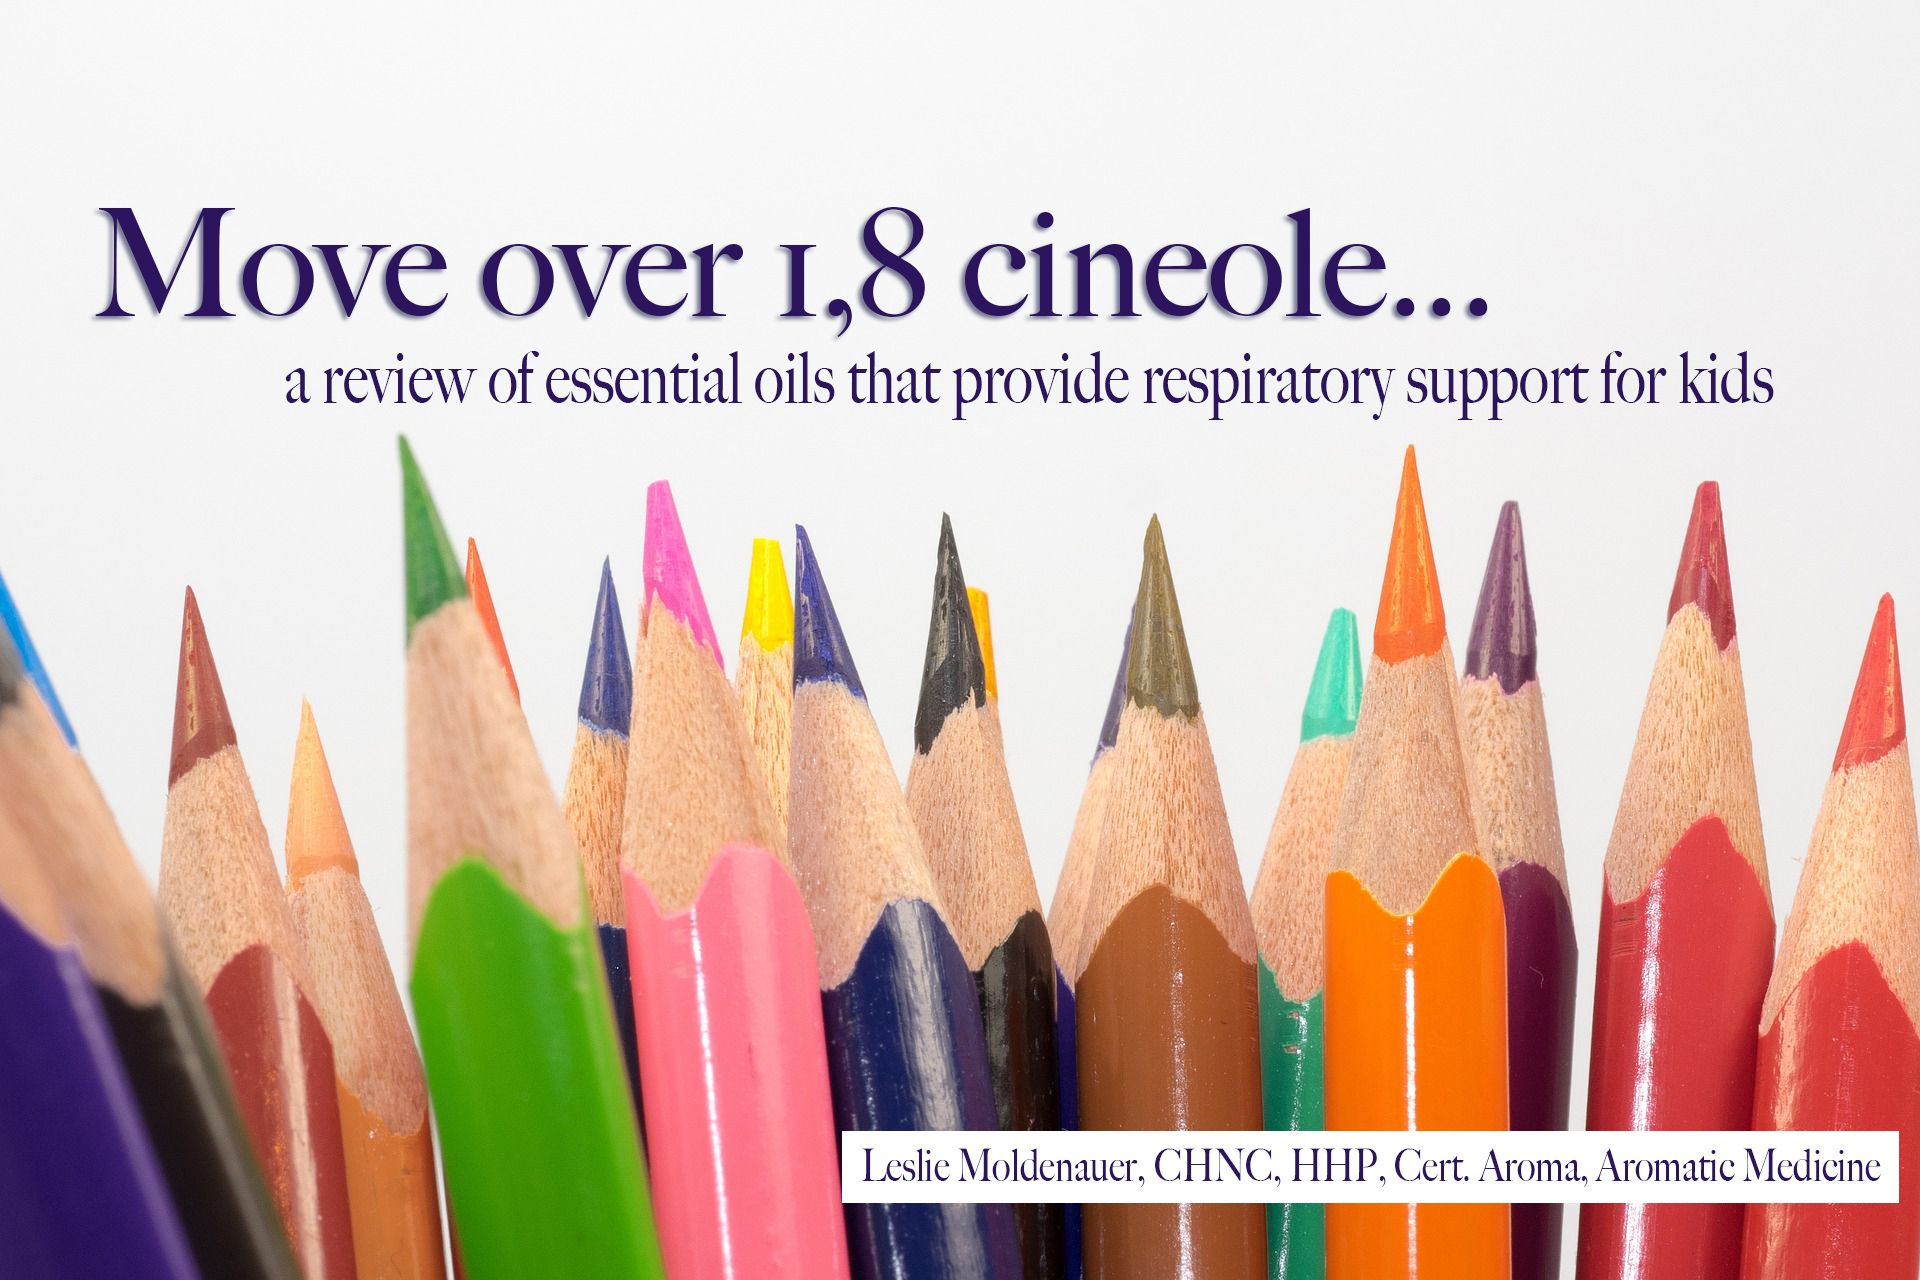 No 18 cineole other respiratory essential oils for kids